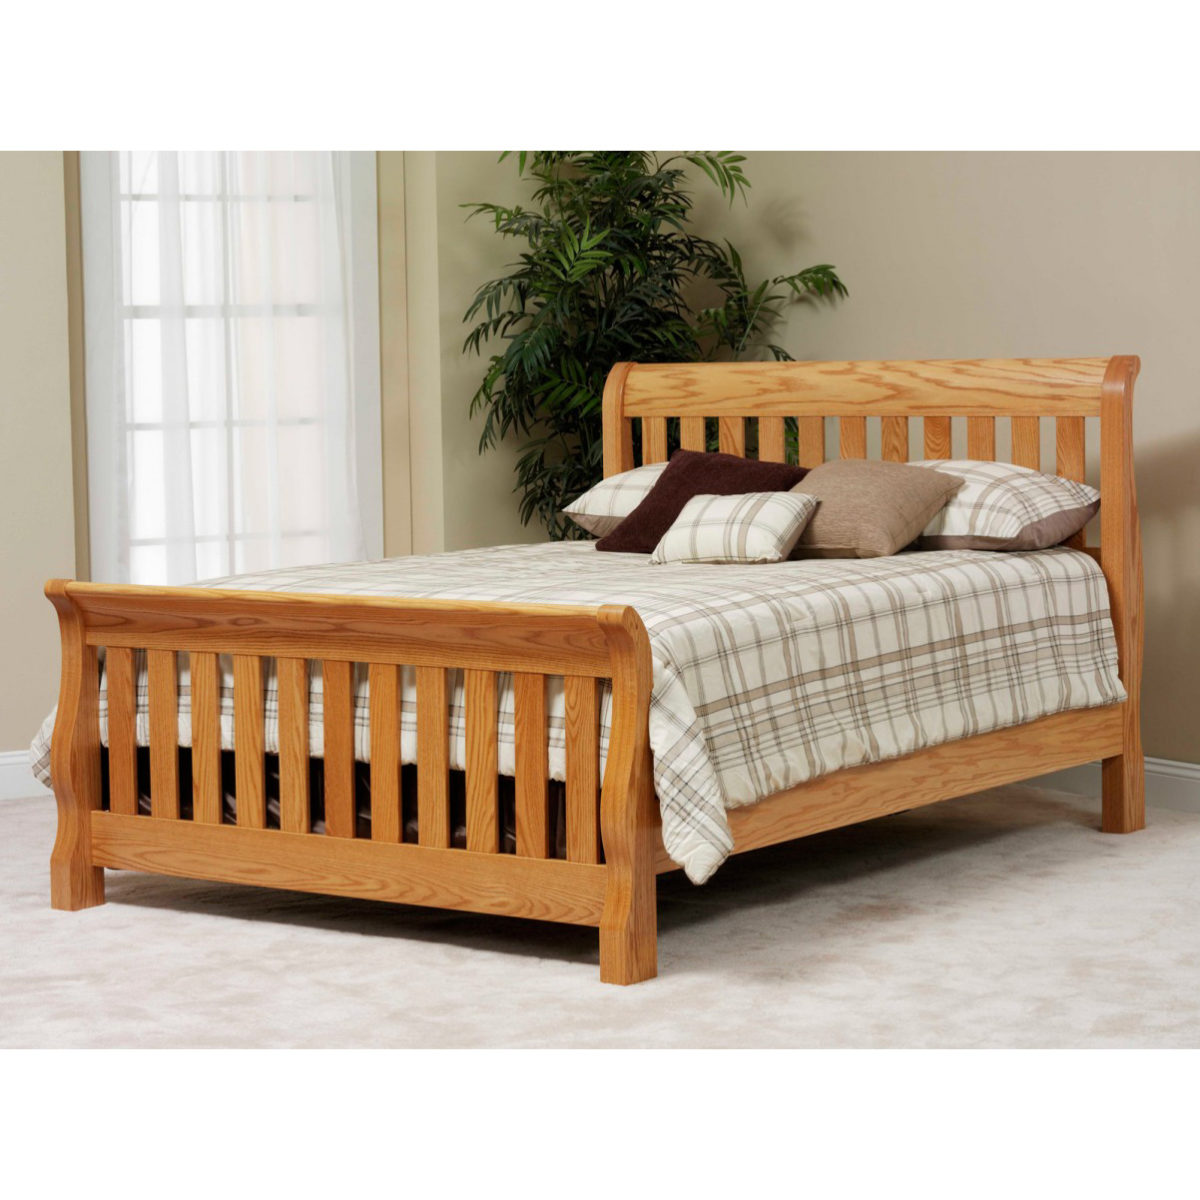 Traditional Series Slat Sleigh Bed Amish Crafted Furniture